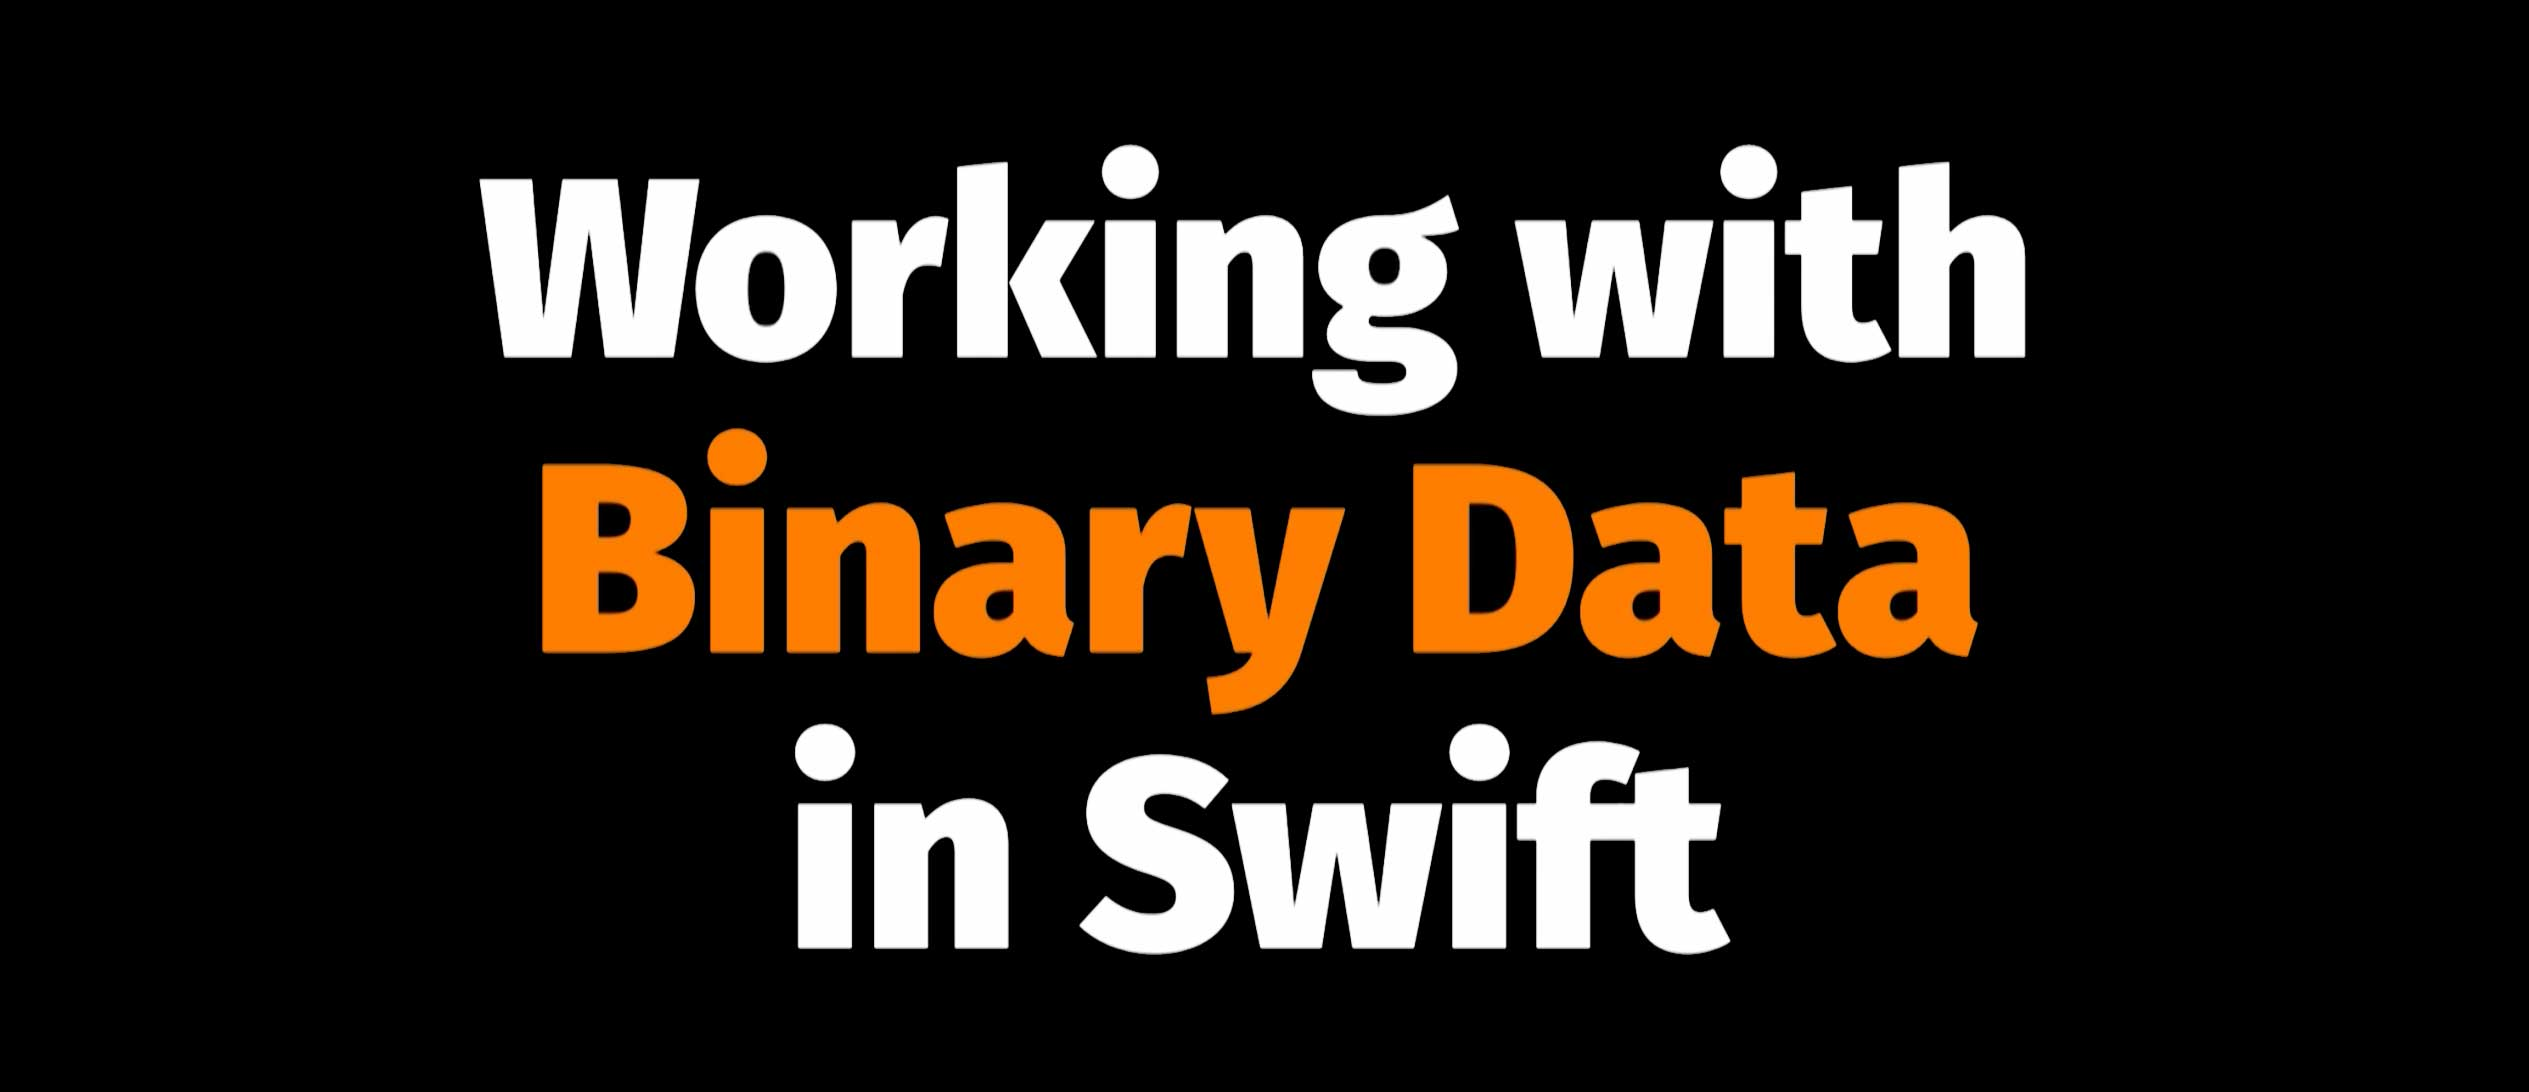 Working with Binary Data in Swift | Skilled io, the Swift Community